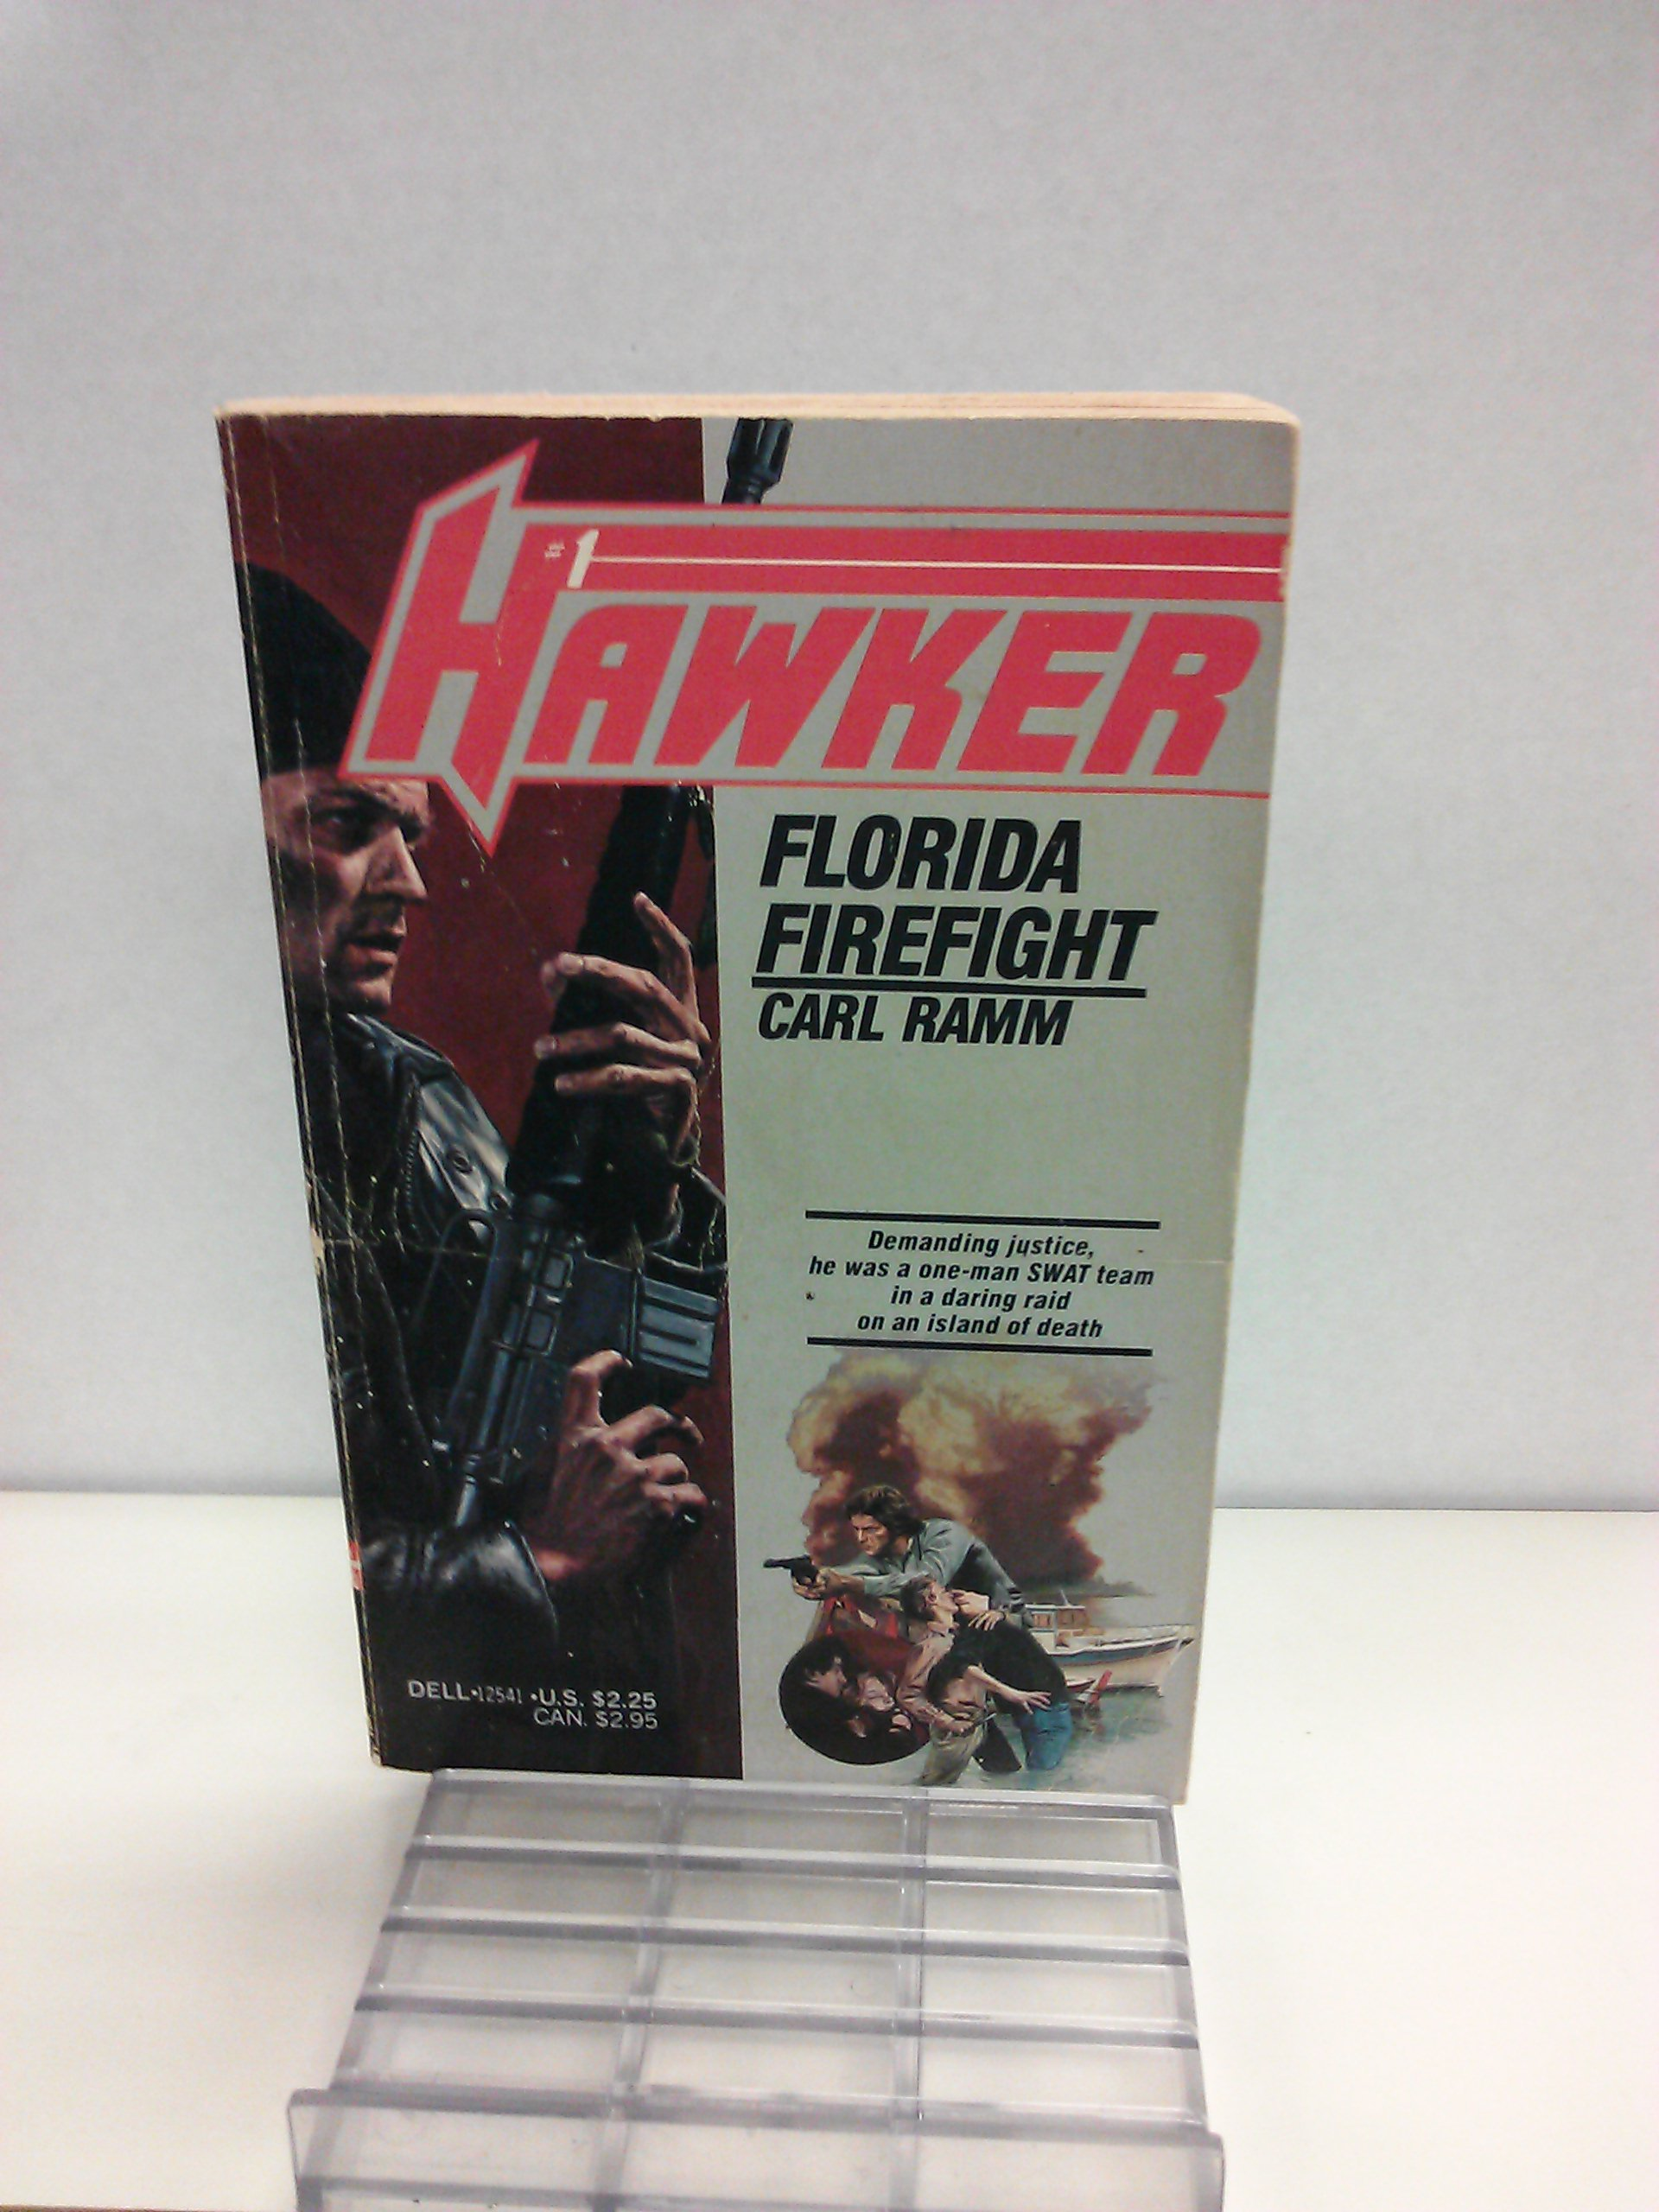 Florida Firefight (Hawker #1): Carl Ramm: 9780440125419: Books - Amazon.ca